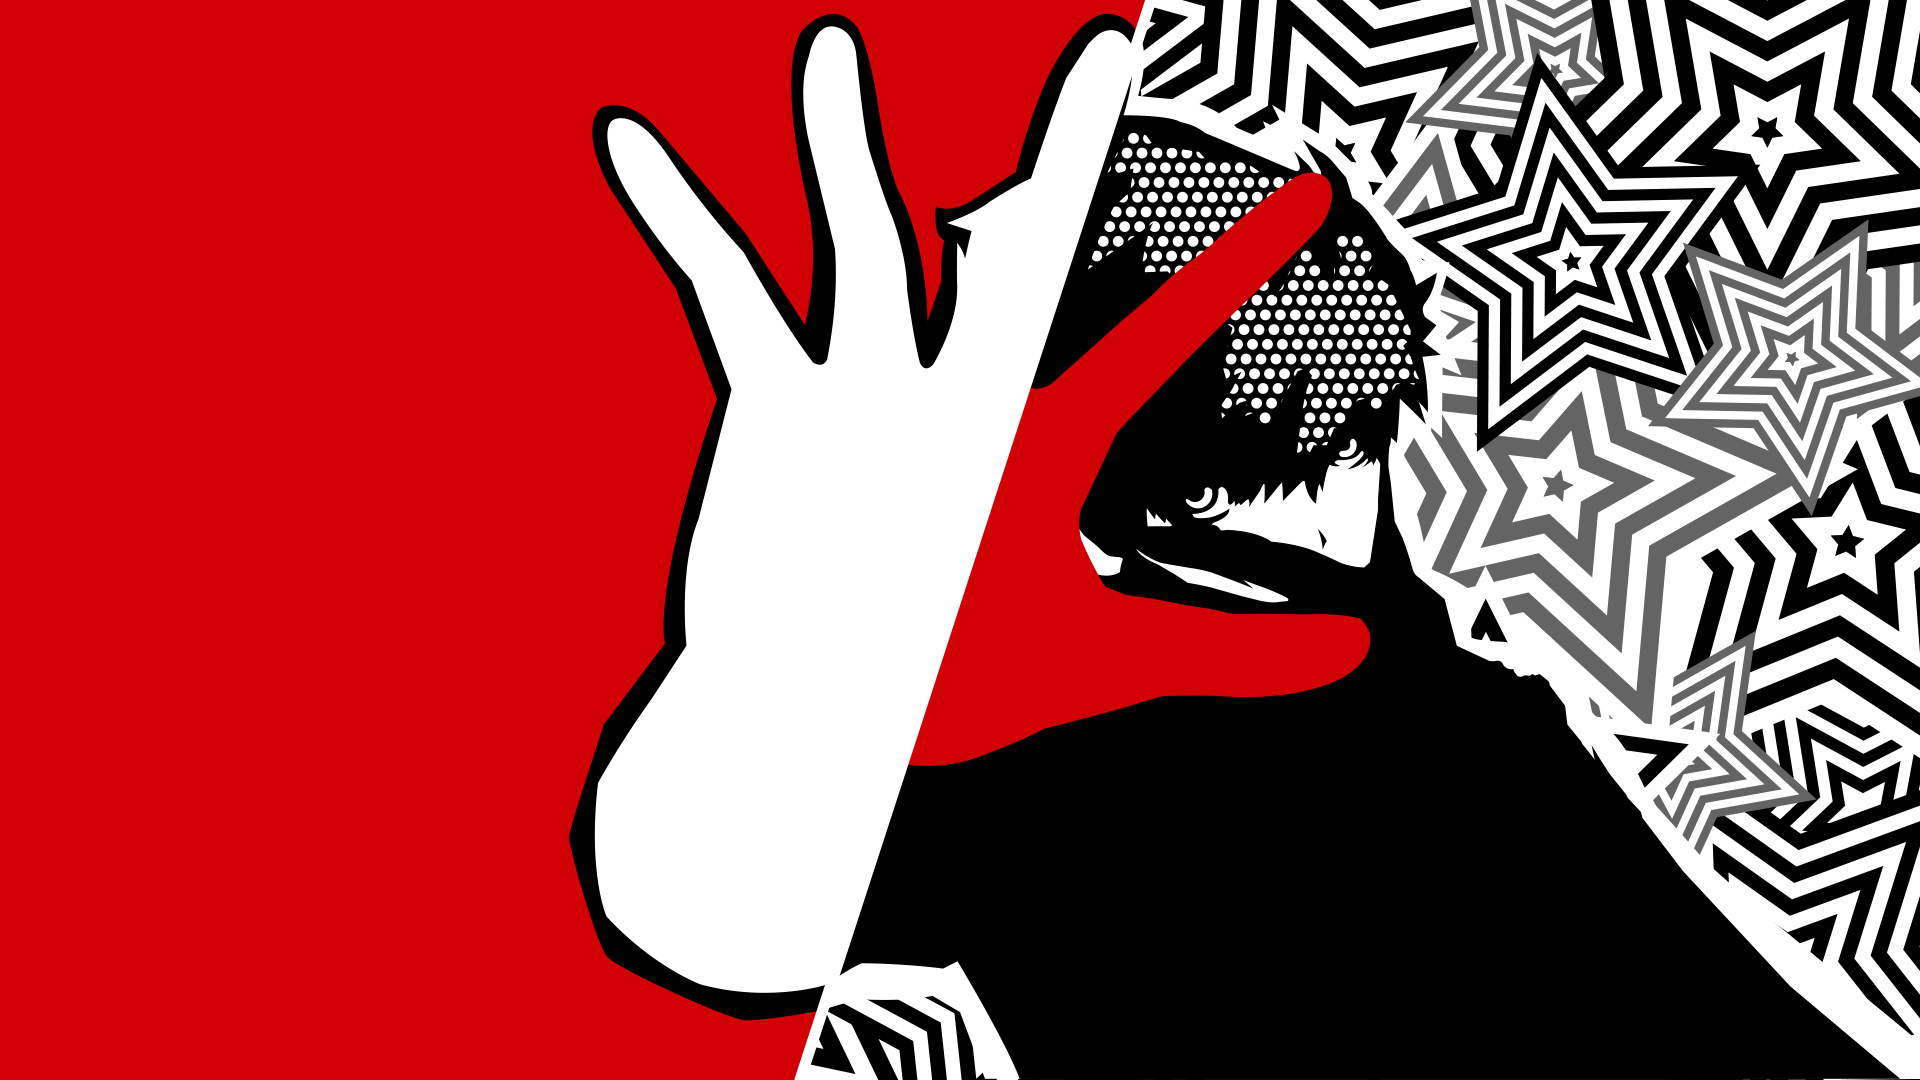 Persona 5 Wallpapers, Pictures, Images